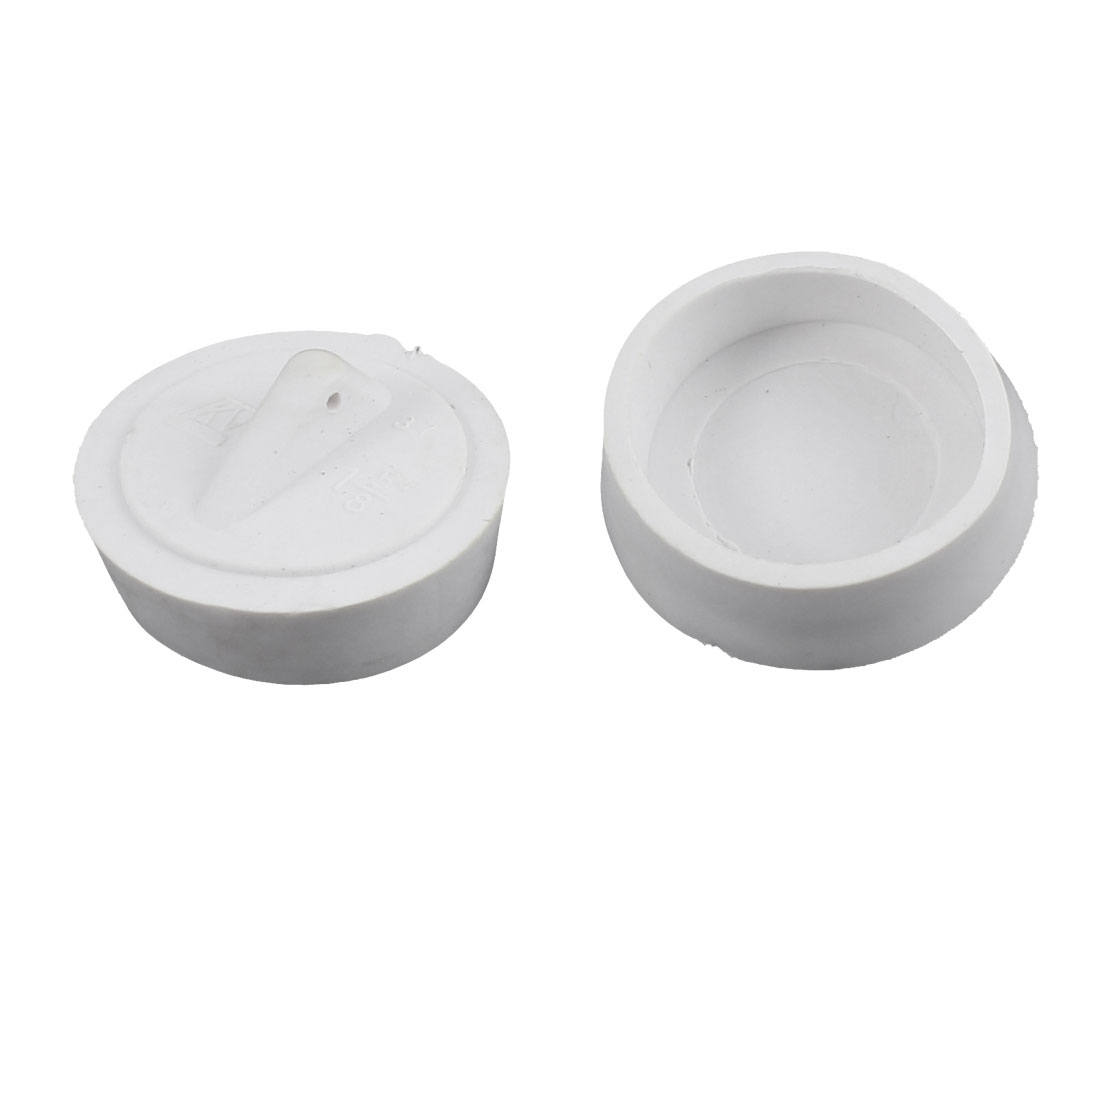 2Pcs Rubber Drain Stopper Bathtub Basin Sink Stopper Waste White